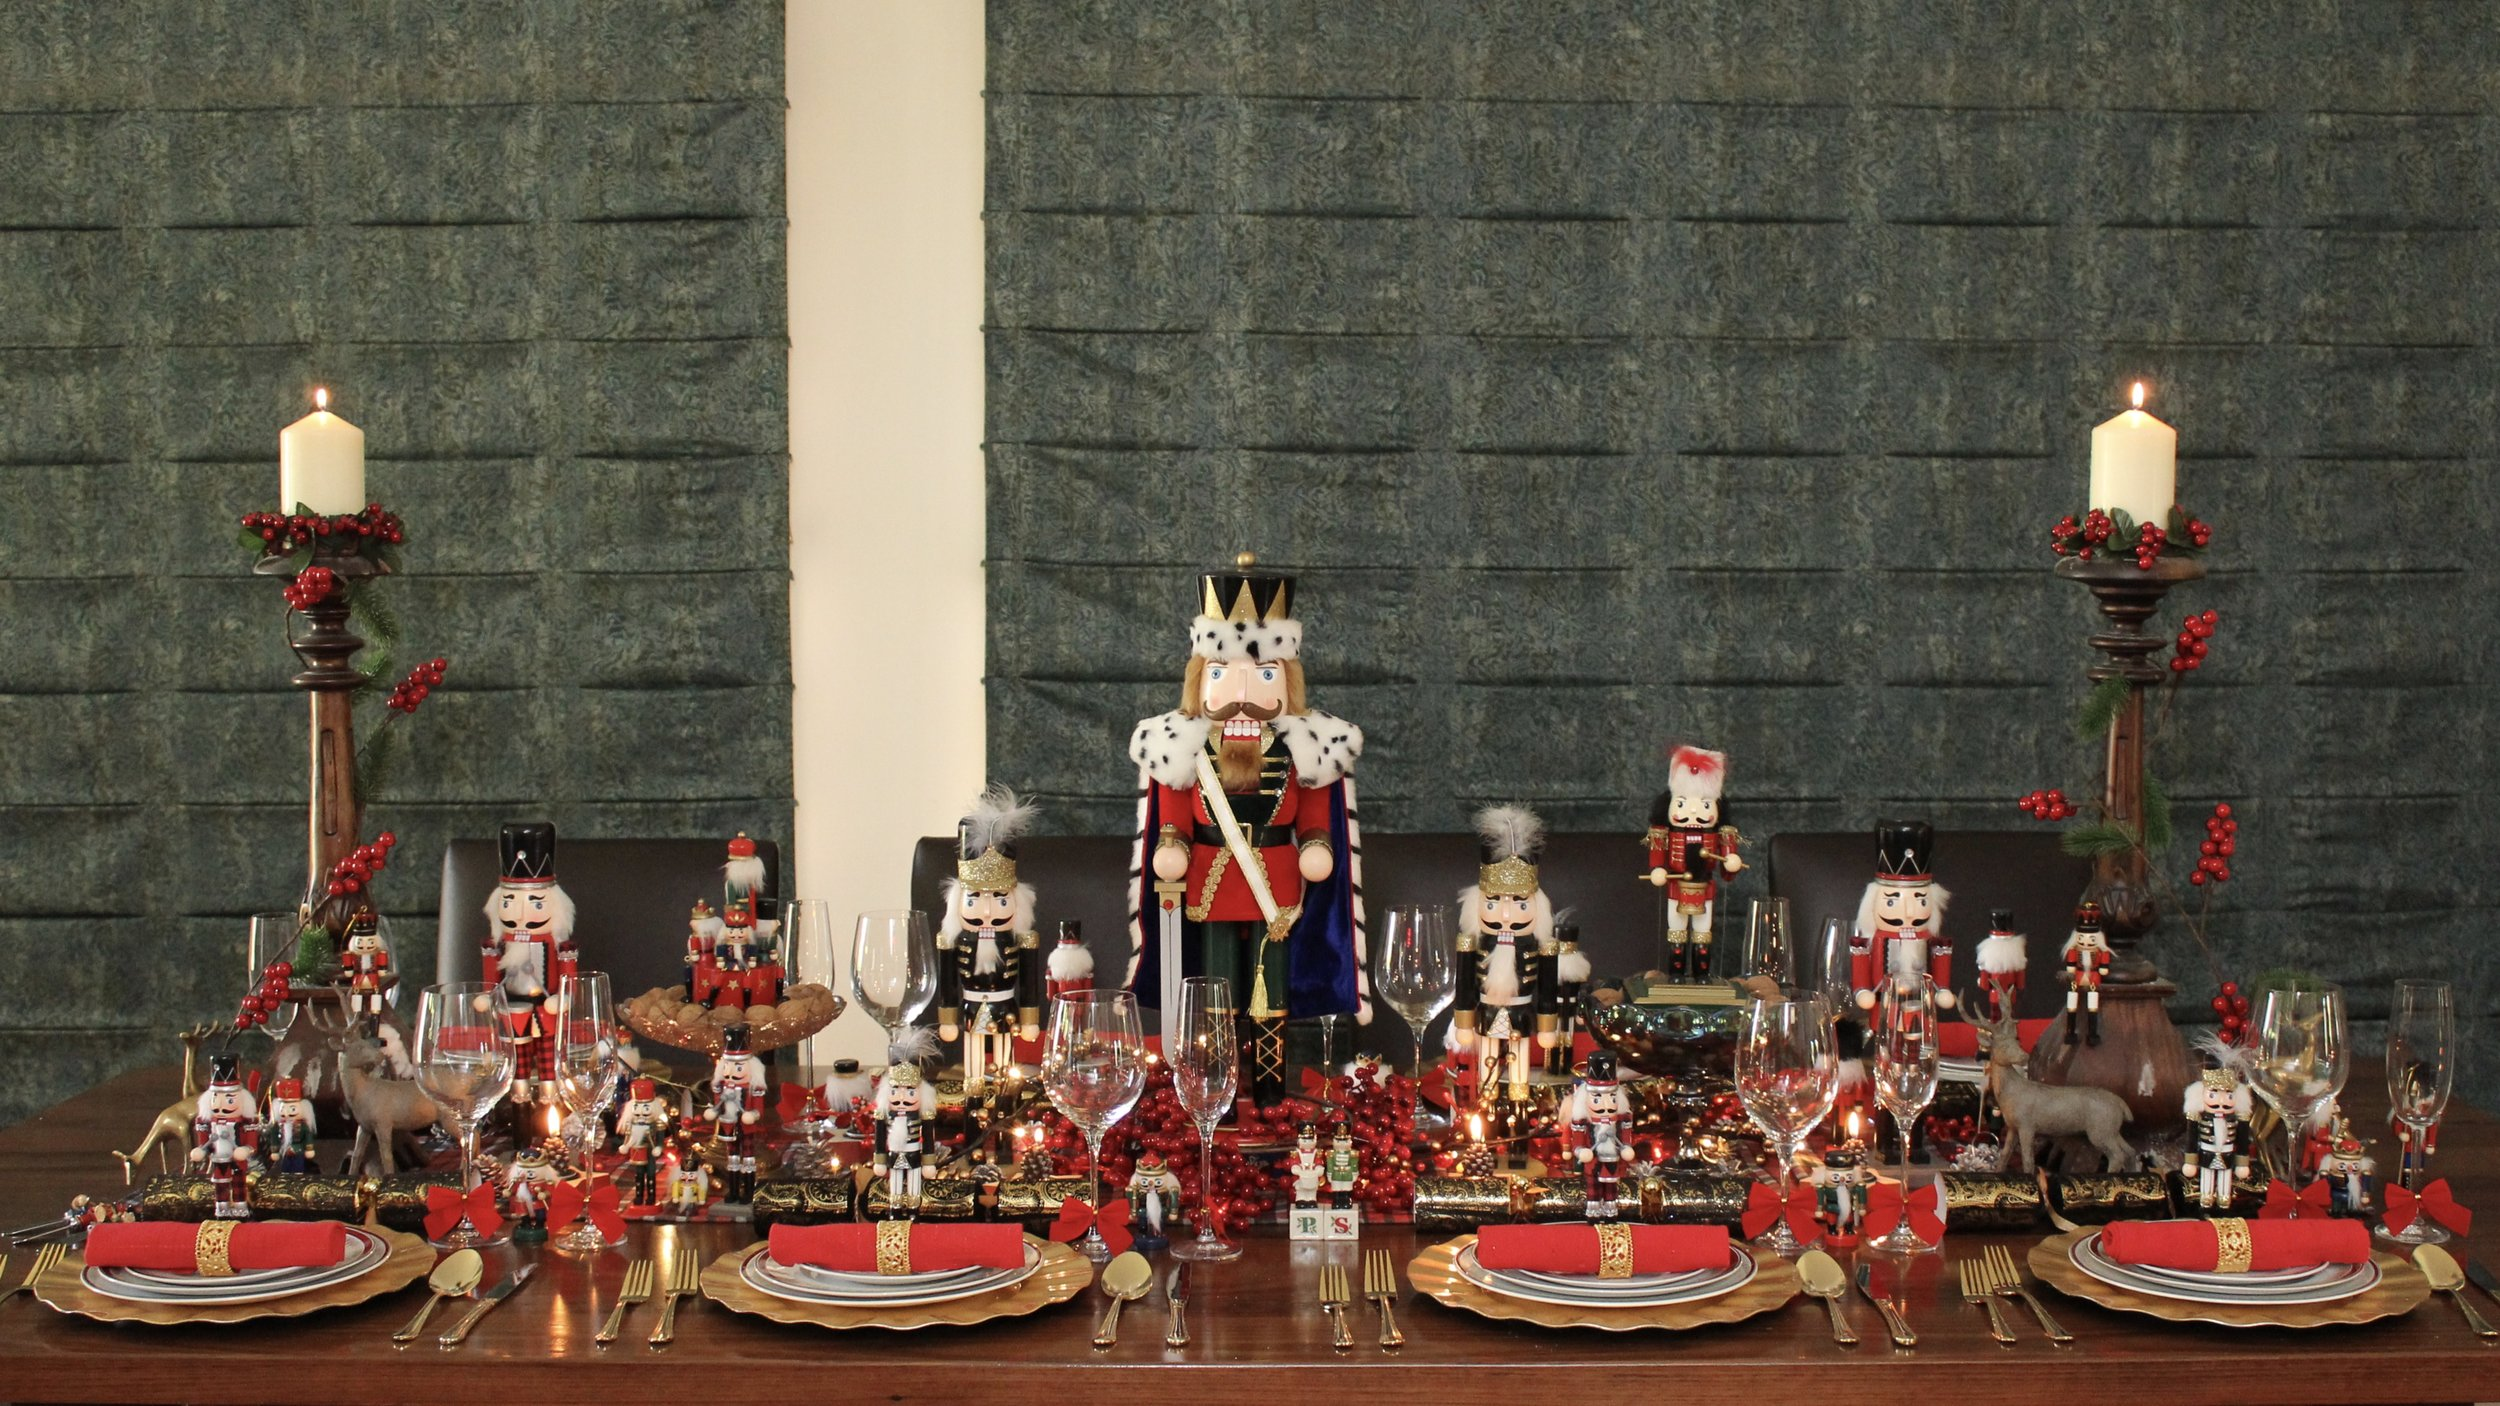 Nutcracker Christmas Table